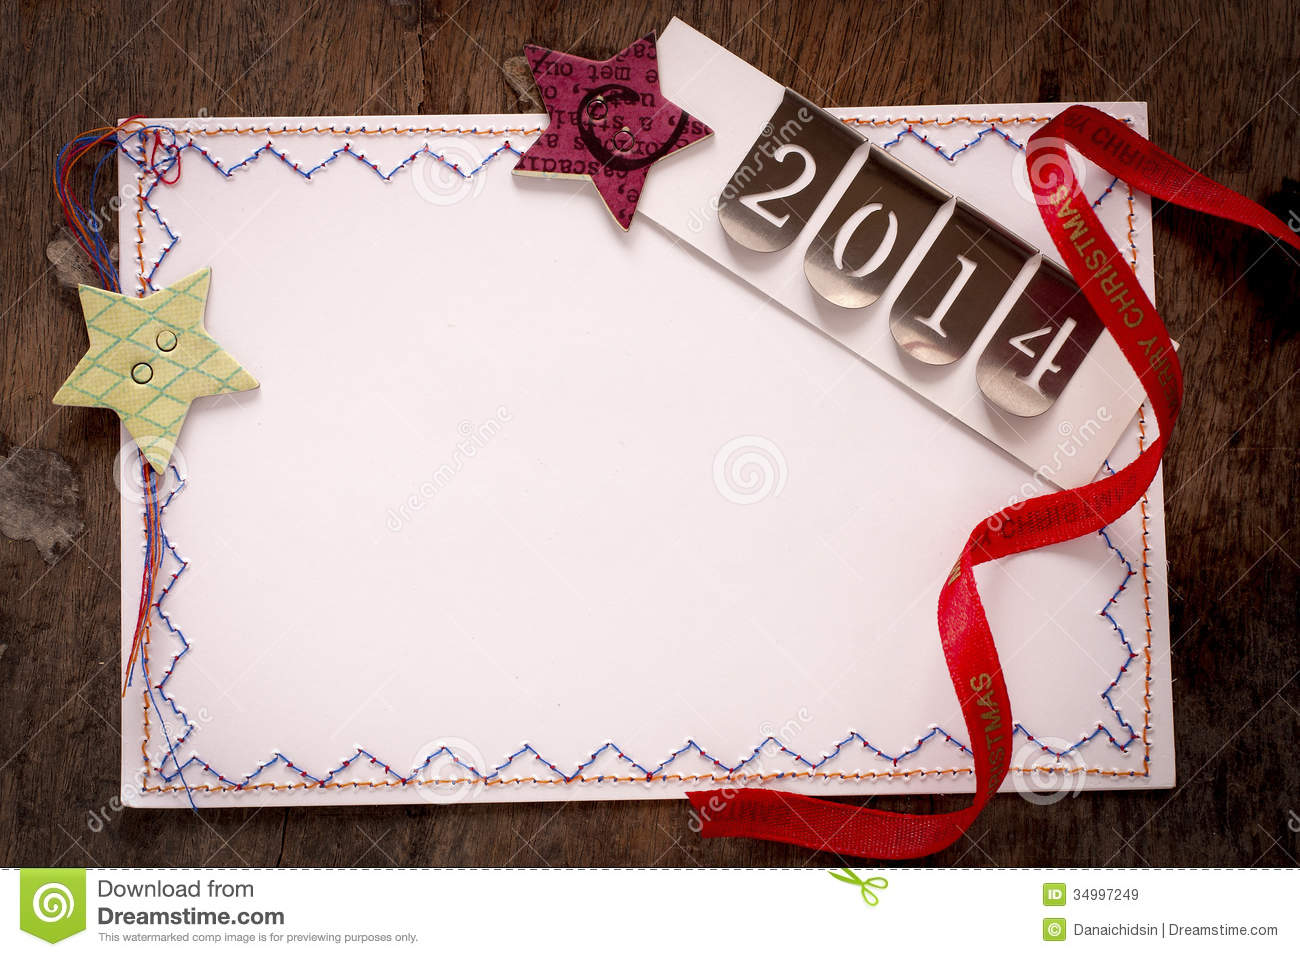 New year and christmas greeting cards stock image image of holiday new year and christmas greeting cards m4hsunfo